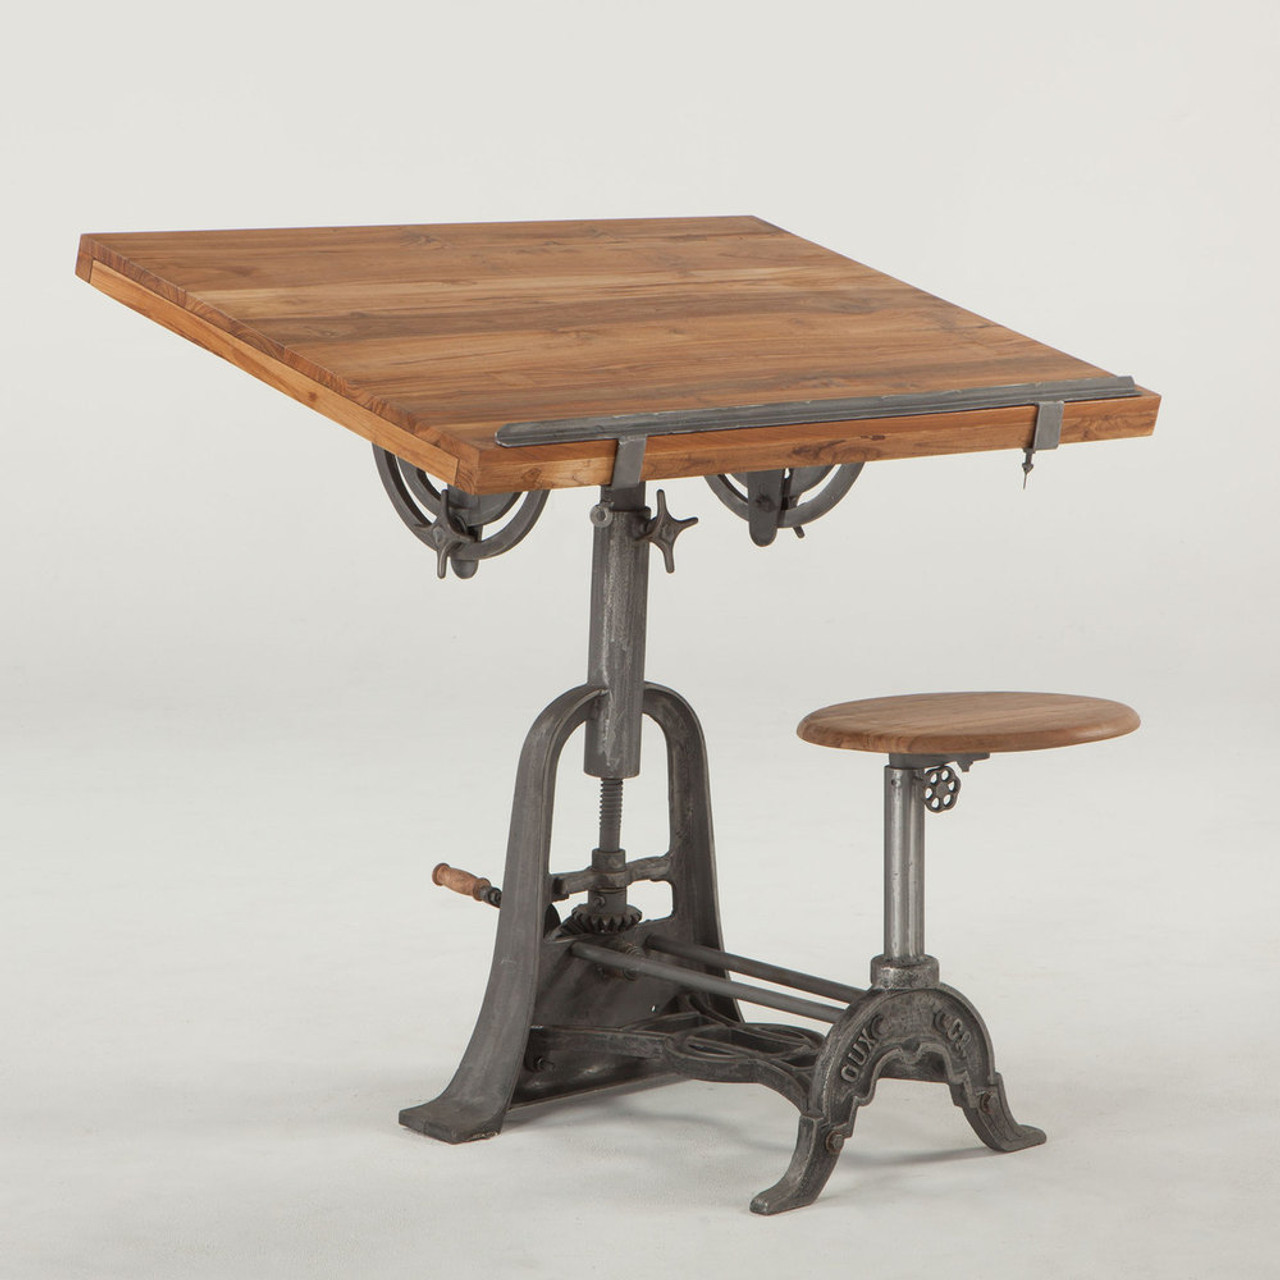 architect furniture. French Vintage Industrial Architect Drafting Table With Attached Seat Furniture I